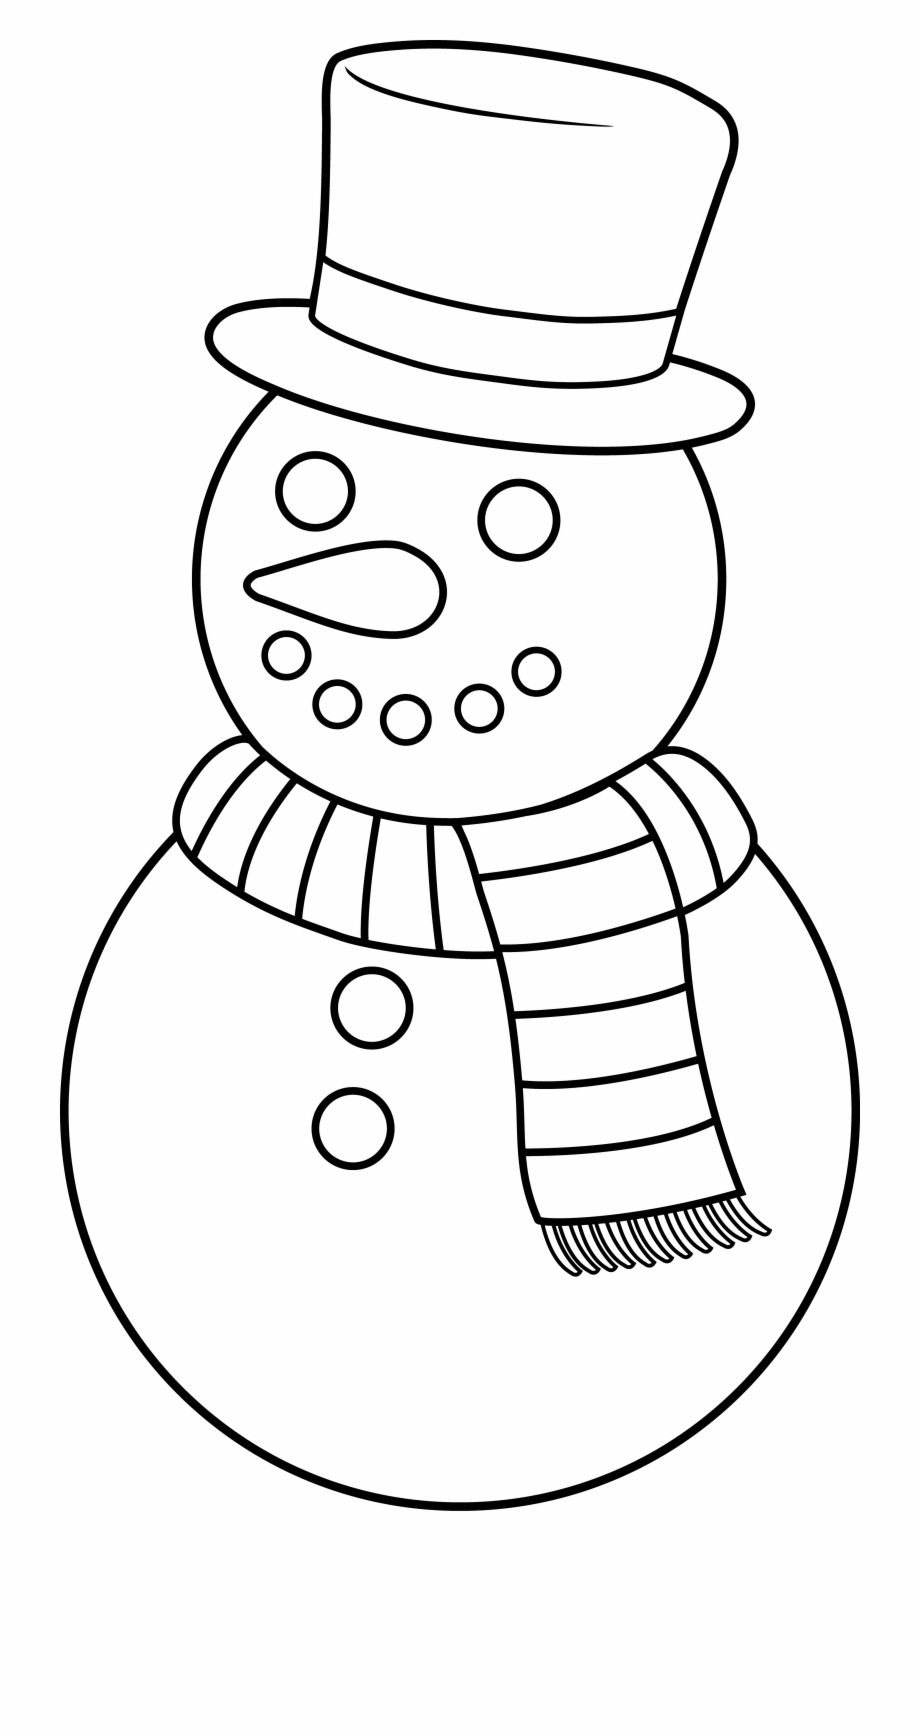 Black And White Snow Png - Snowman Clipart Outline - Snow Man Clip Art Black And White Free ...